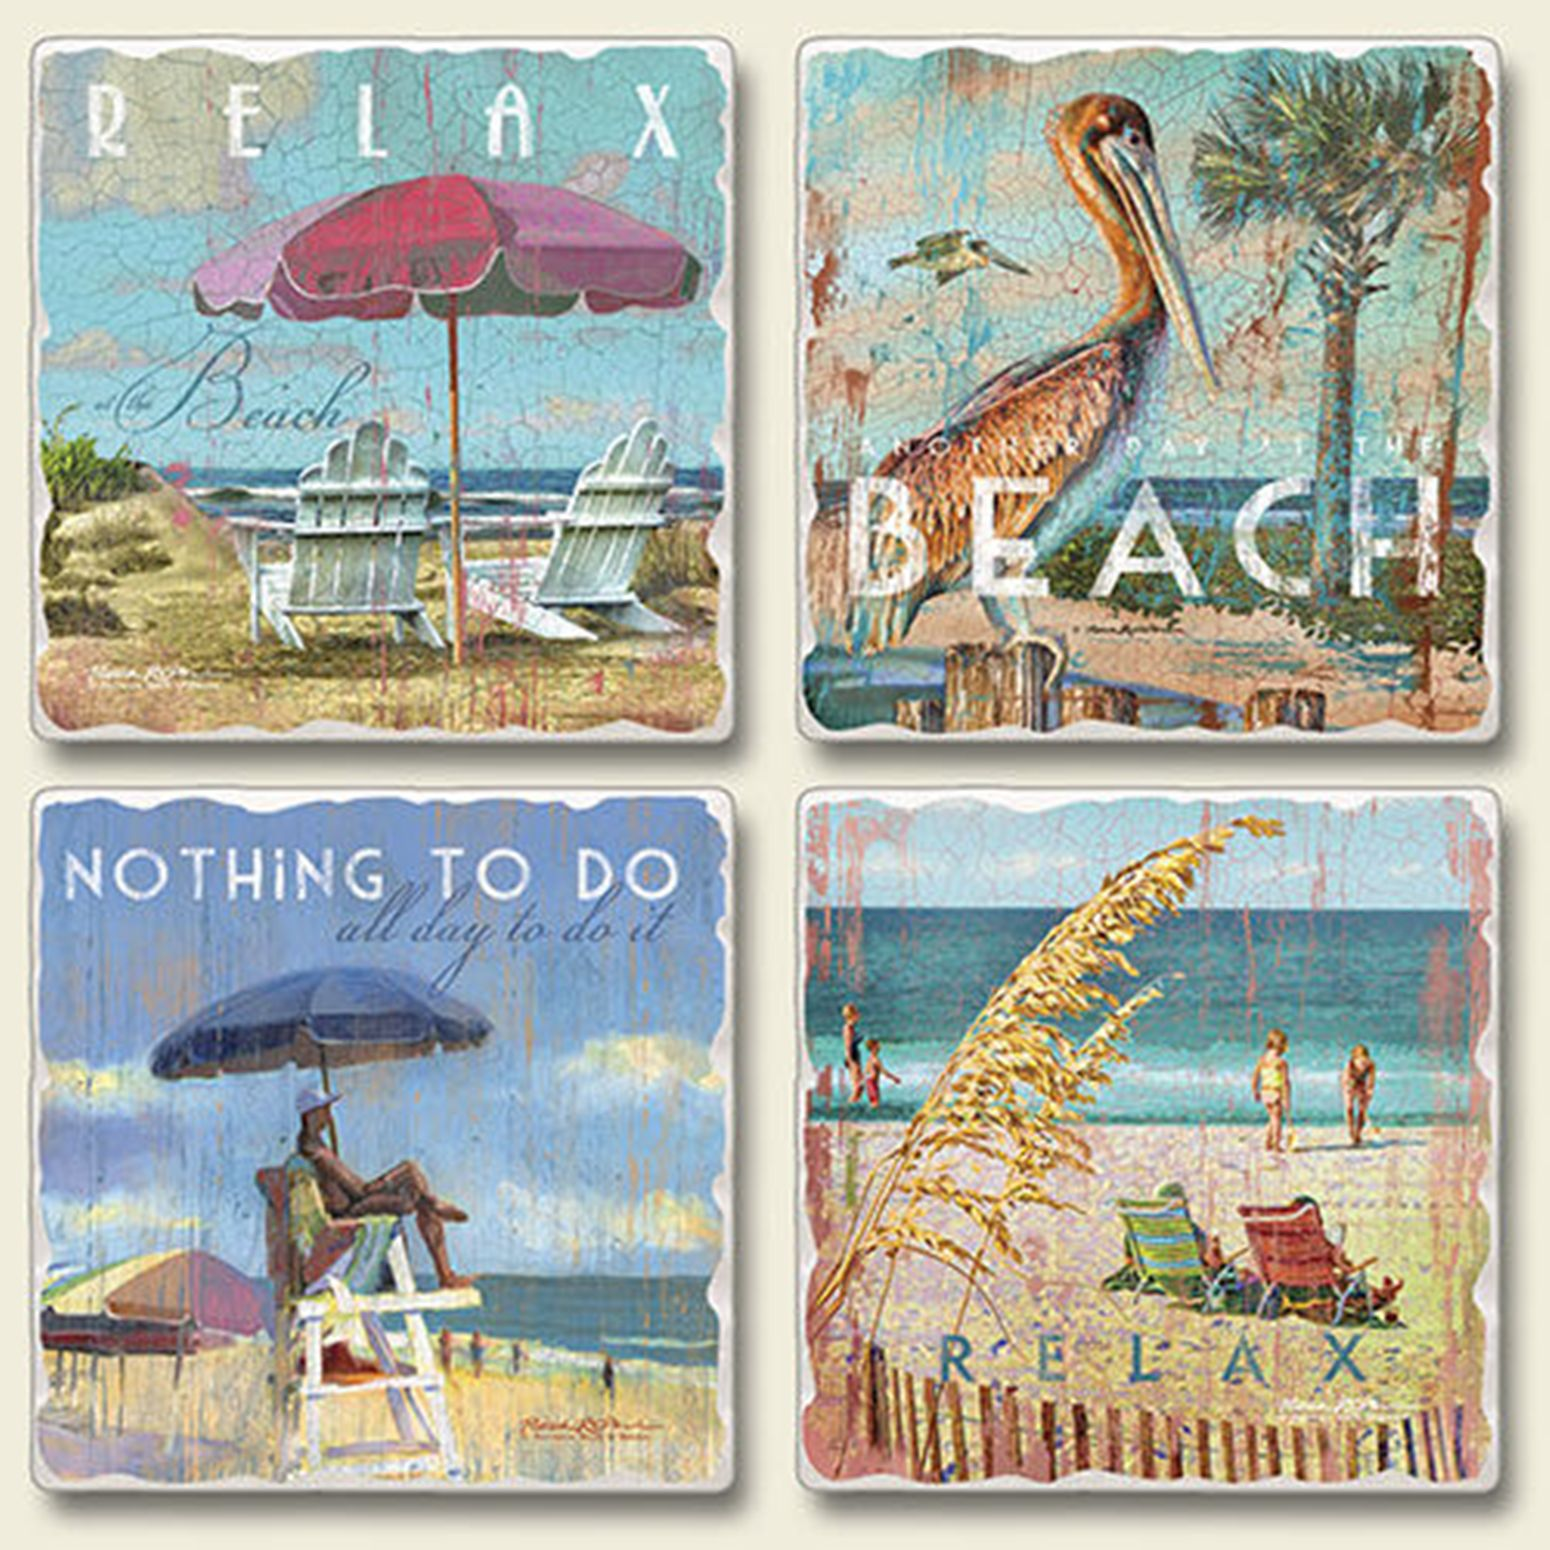 Relax at the Beach Absorbent Tumbled Stone Coasters Set of 4 Highalnd Graphics